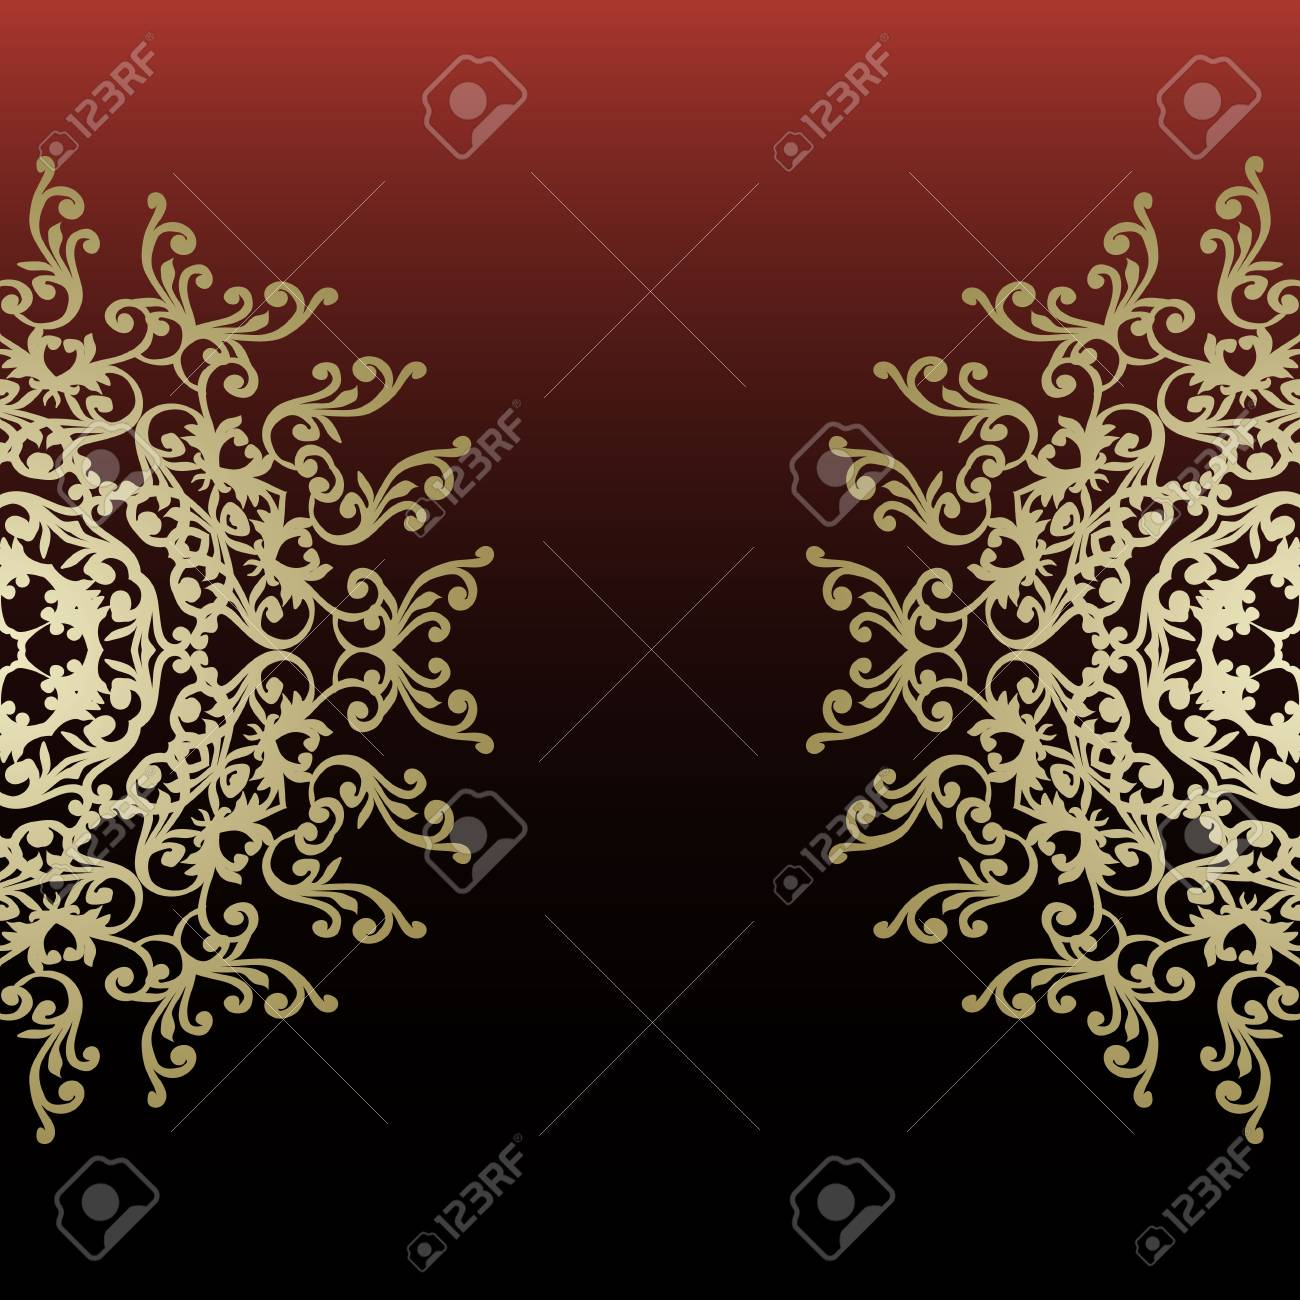 Romantic Wedding Invitation With Golden Abstract Shapes Pattern ...